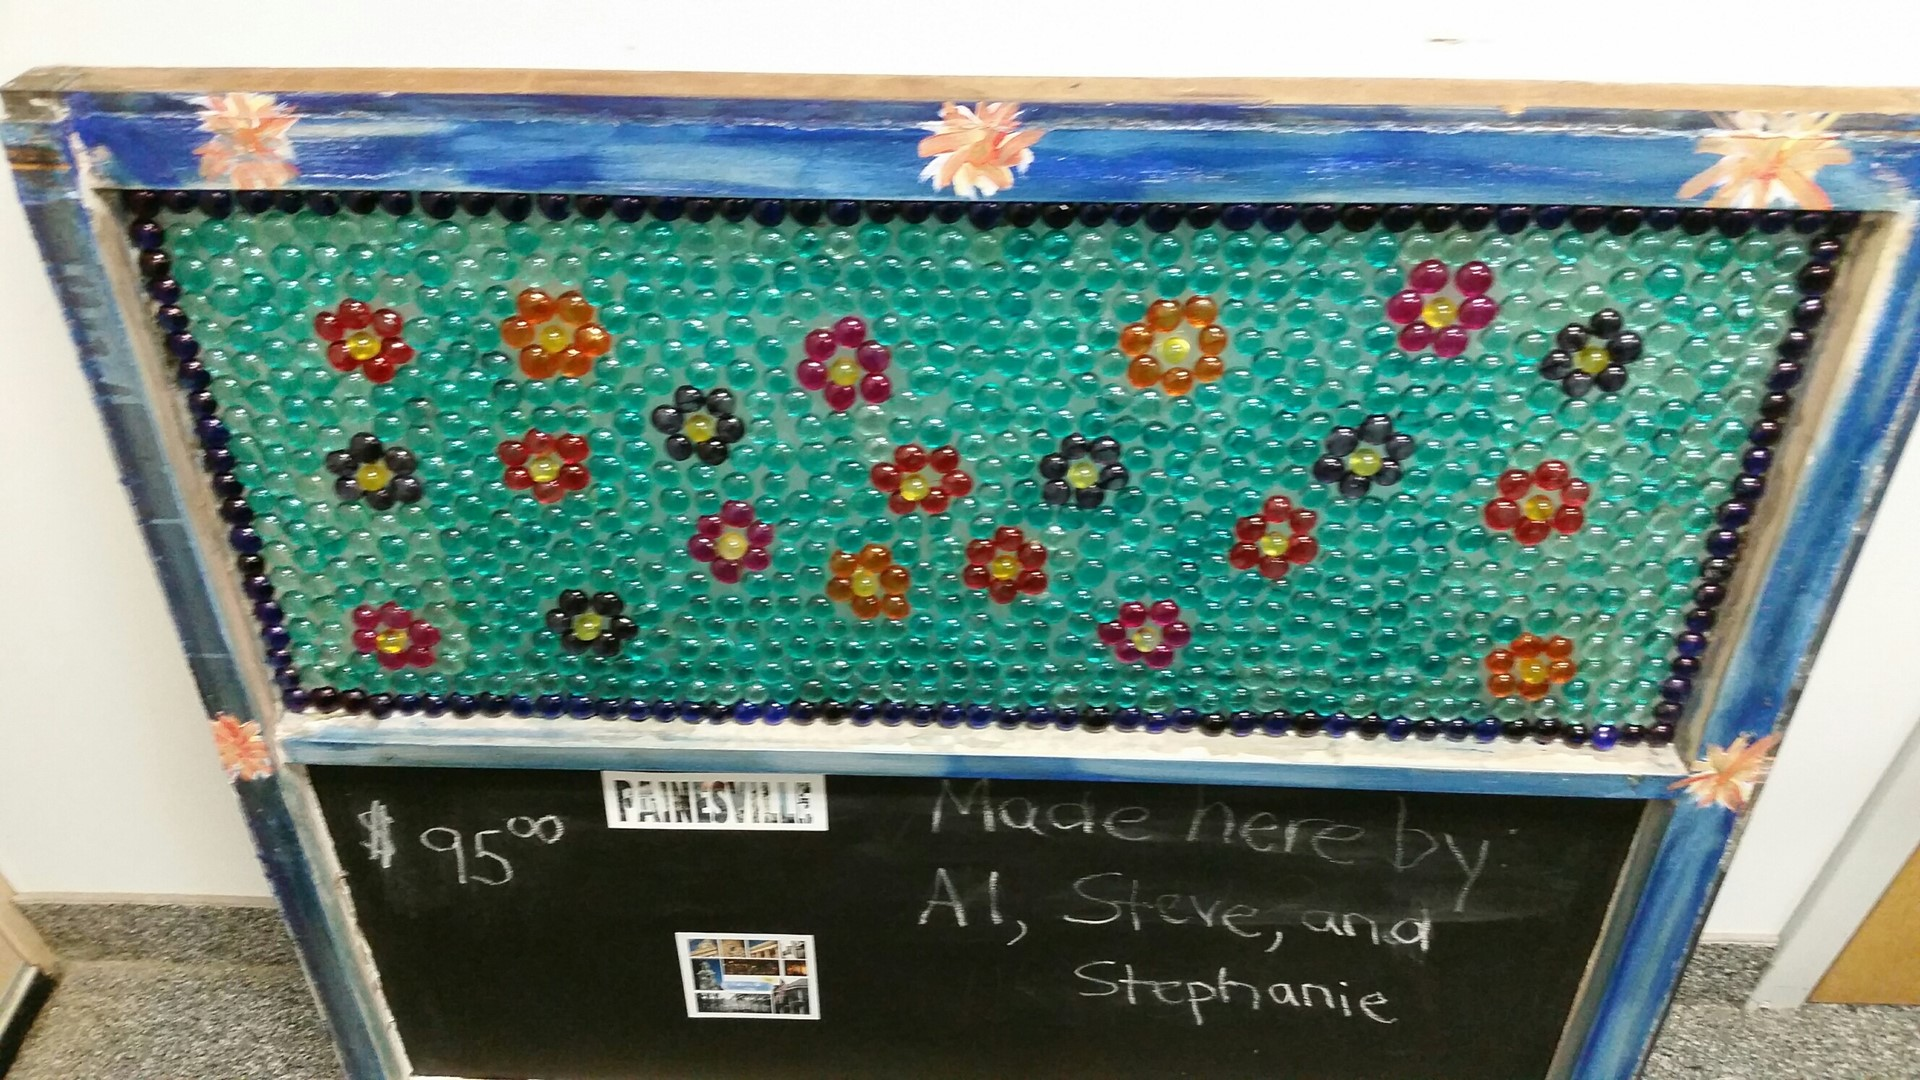 Beaded sheetmetal window with flowers and chalkboard bottom